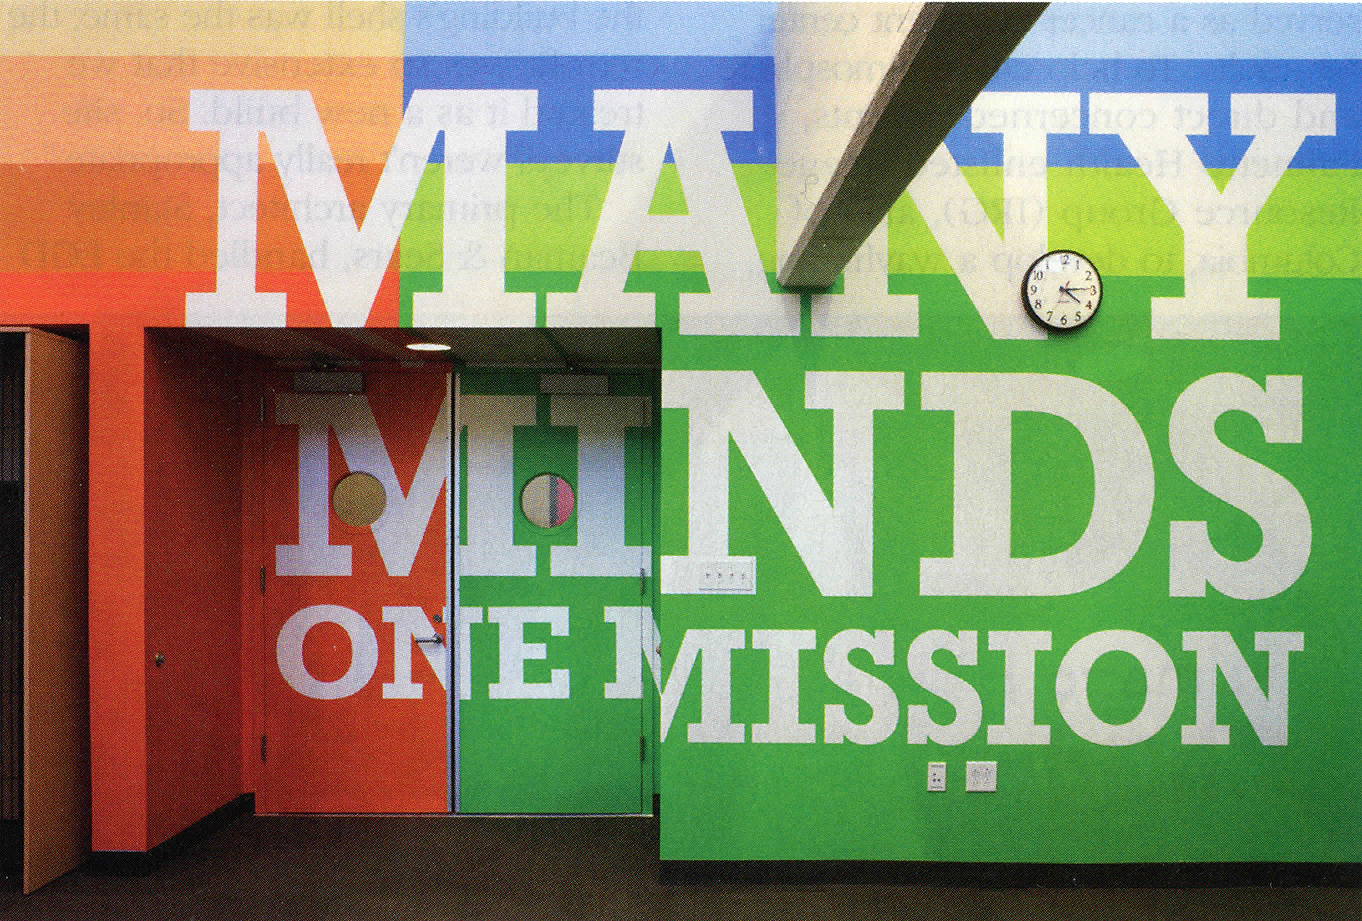 Many Minds - What we like about this sign: This door doesn't limited the ability of this sign to make an impression. Instead it adds to the 3-dimensional capability of the sign.